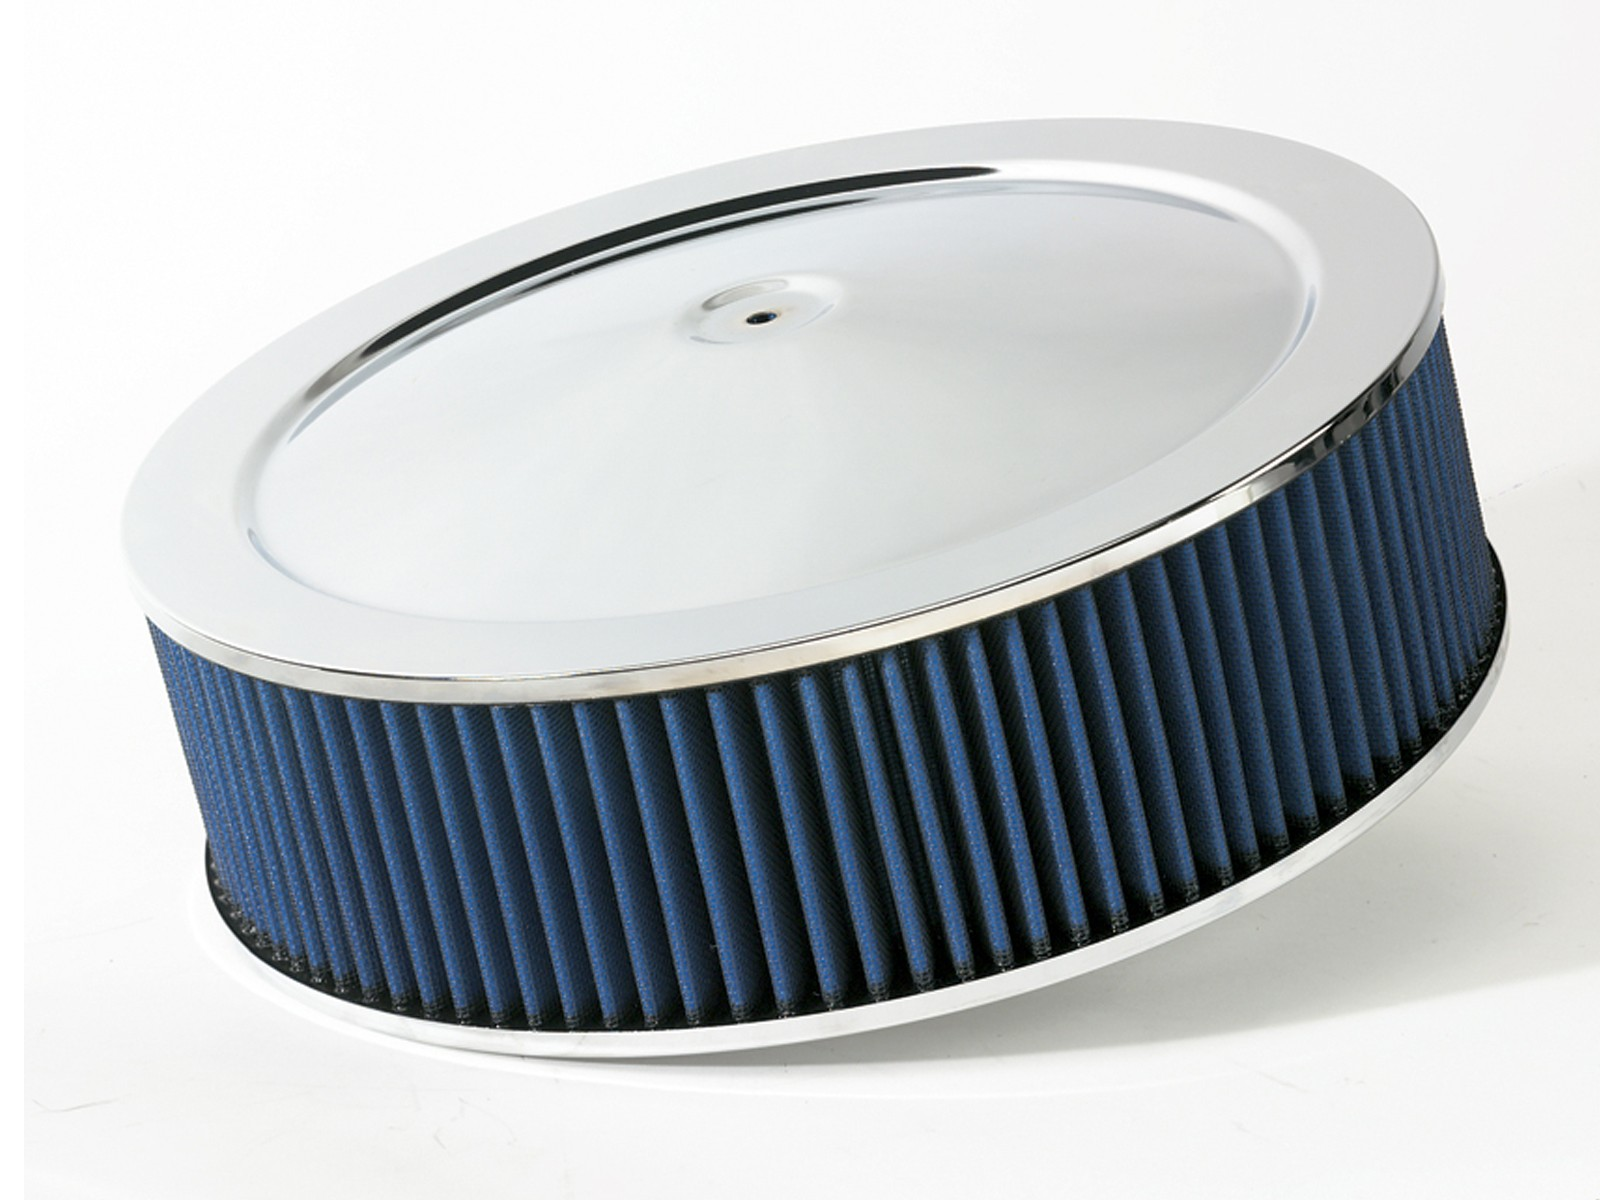 aFe POWER 18-21402 Magnum FLOW Pro 5R Air Filter